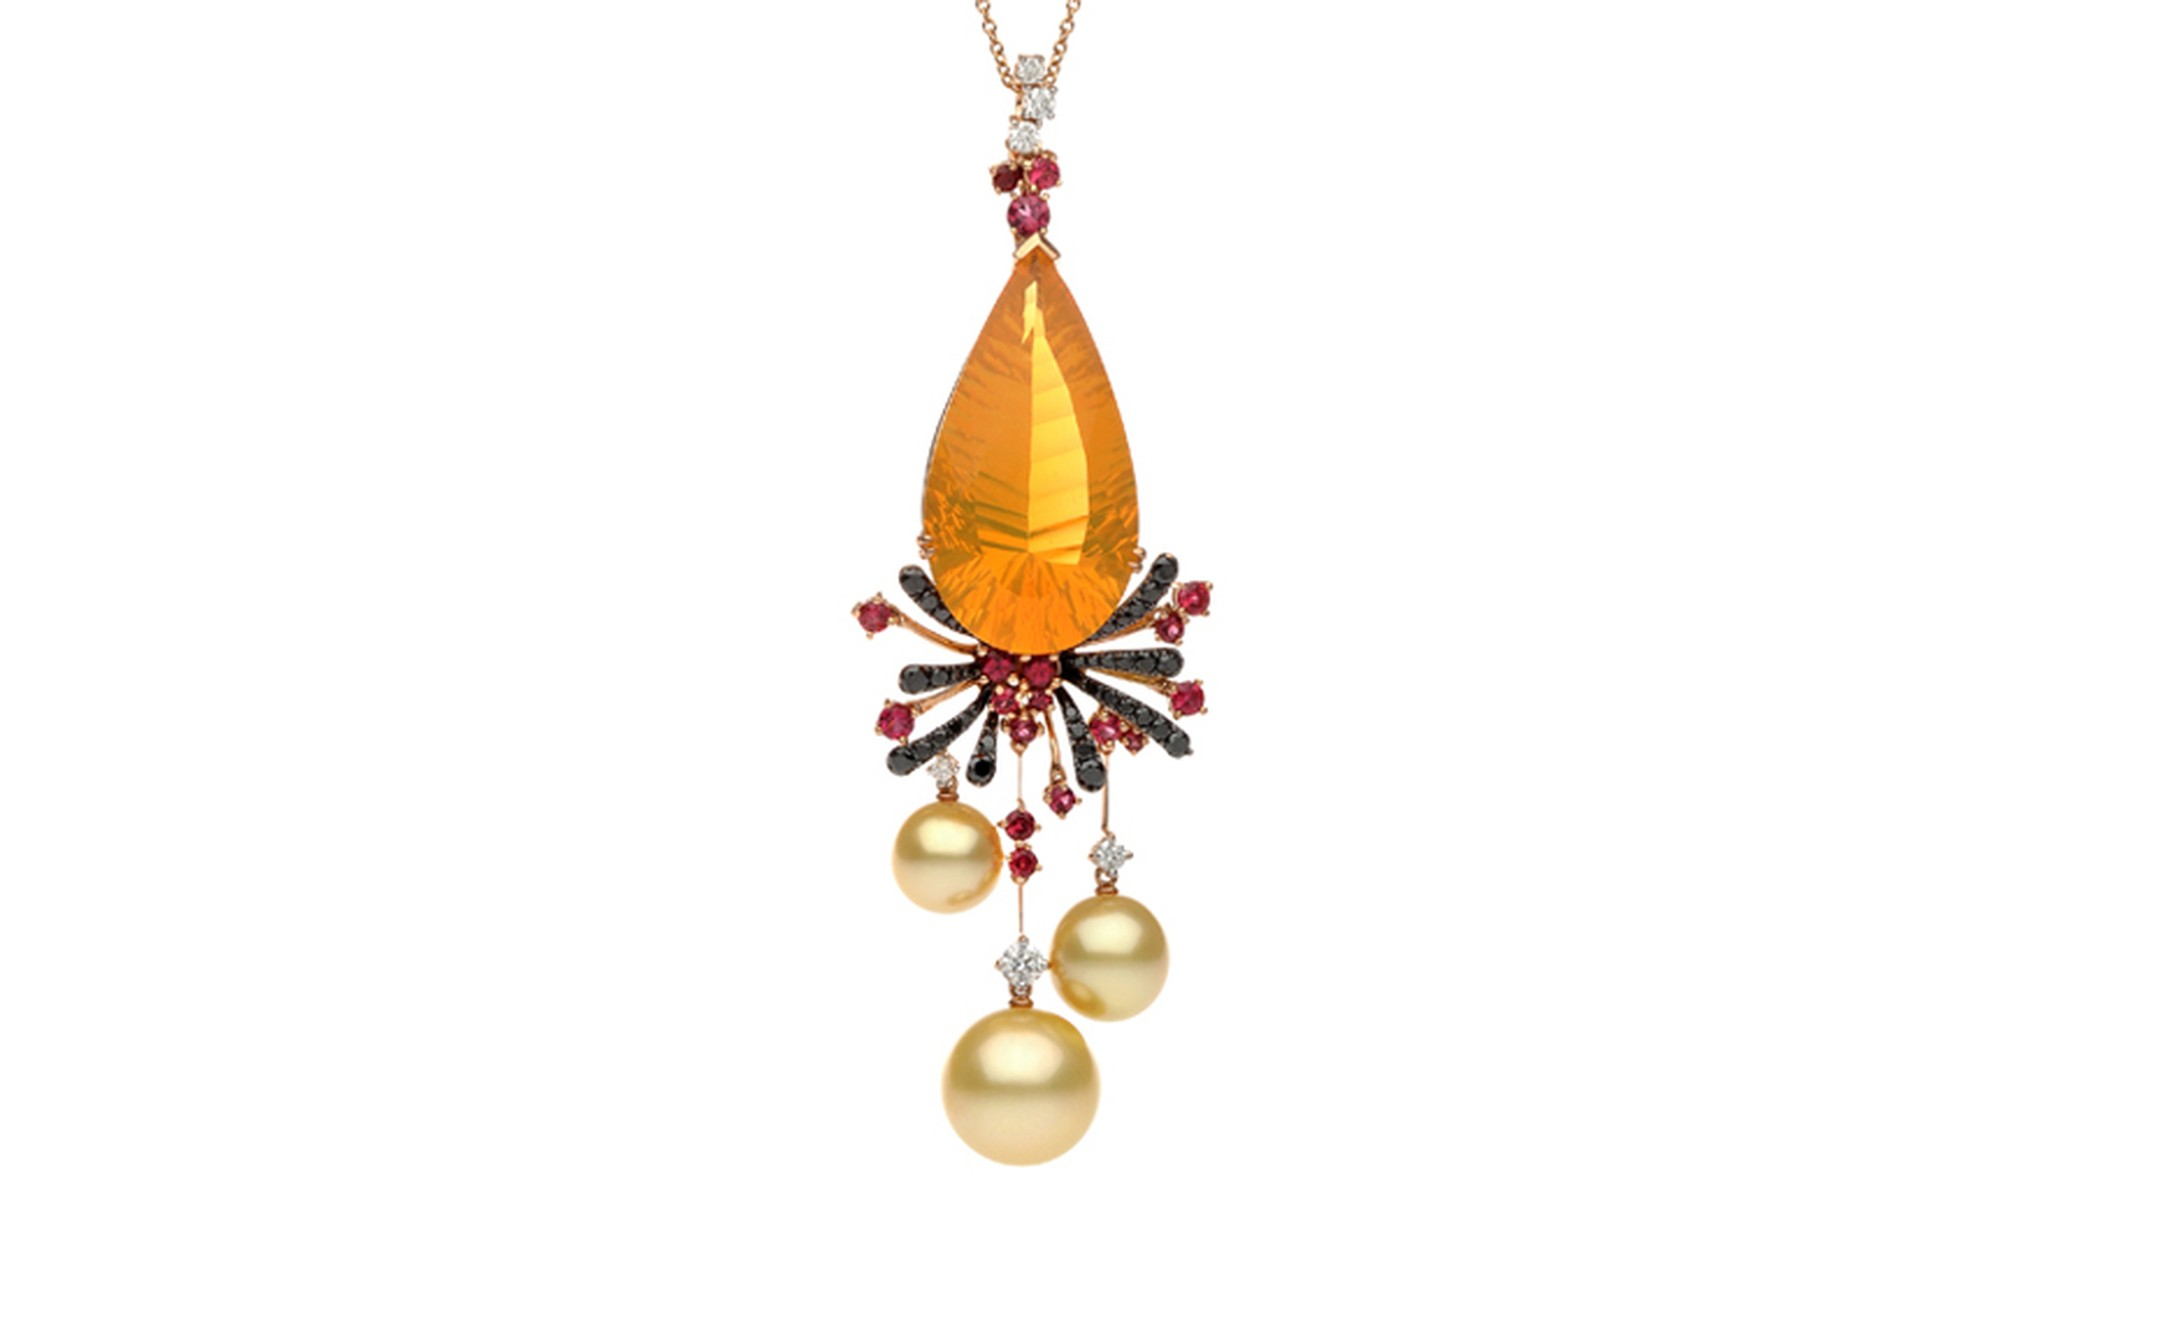 Autore, Fire & Ice Fiery Lava rose gold, South Sea pearl, red spinel, fire opal, and black and white diamond necklace. $65,000 AUD.